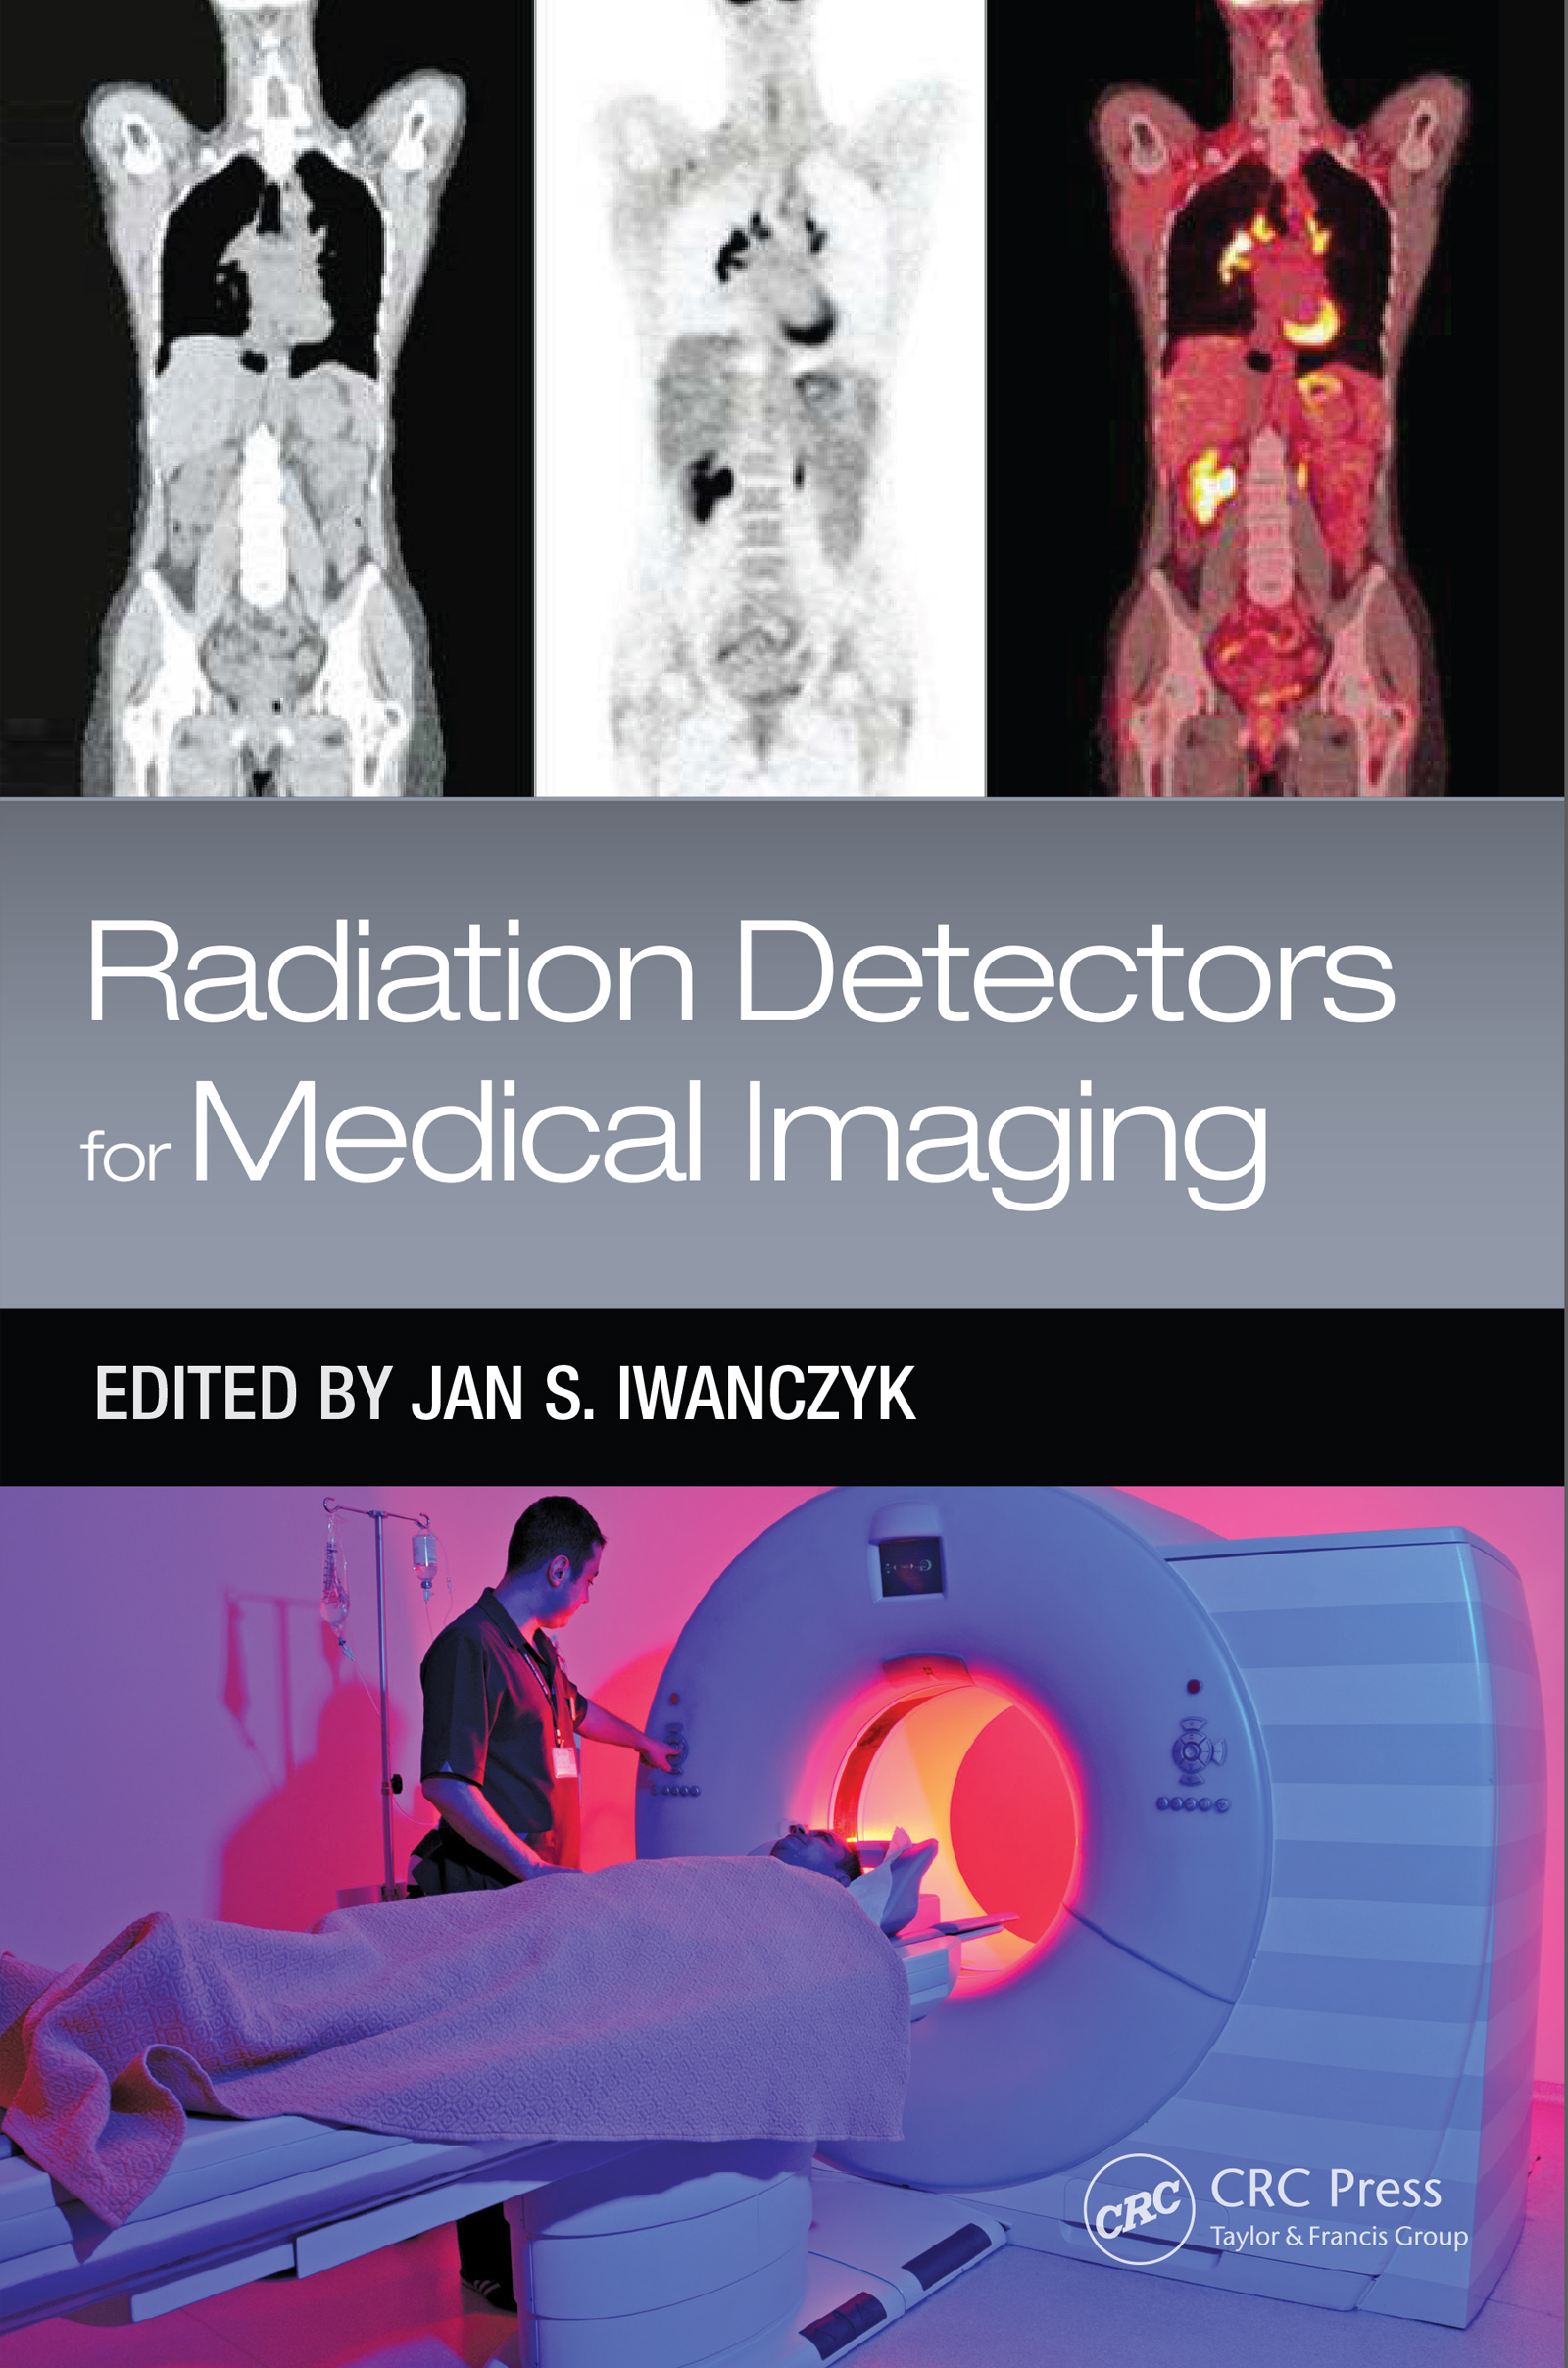 Grating-Based Phase-Contrast X-Ray Imaging Technique